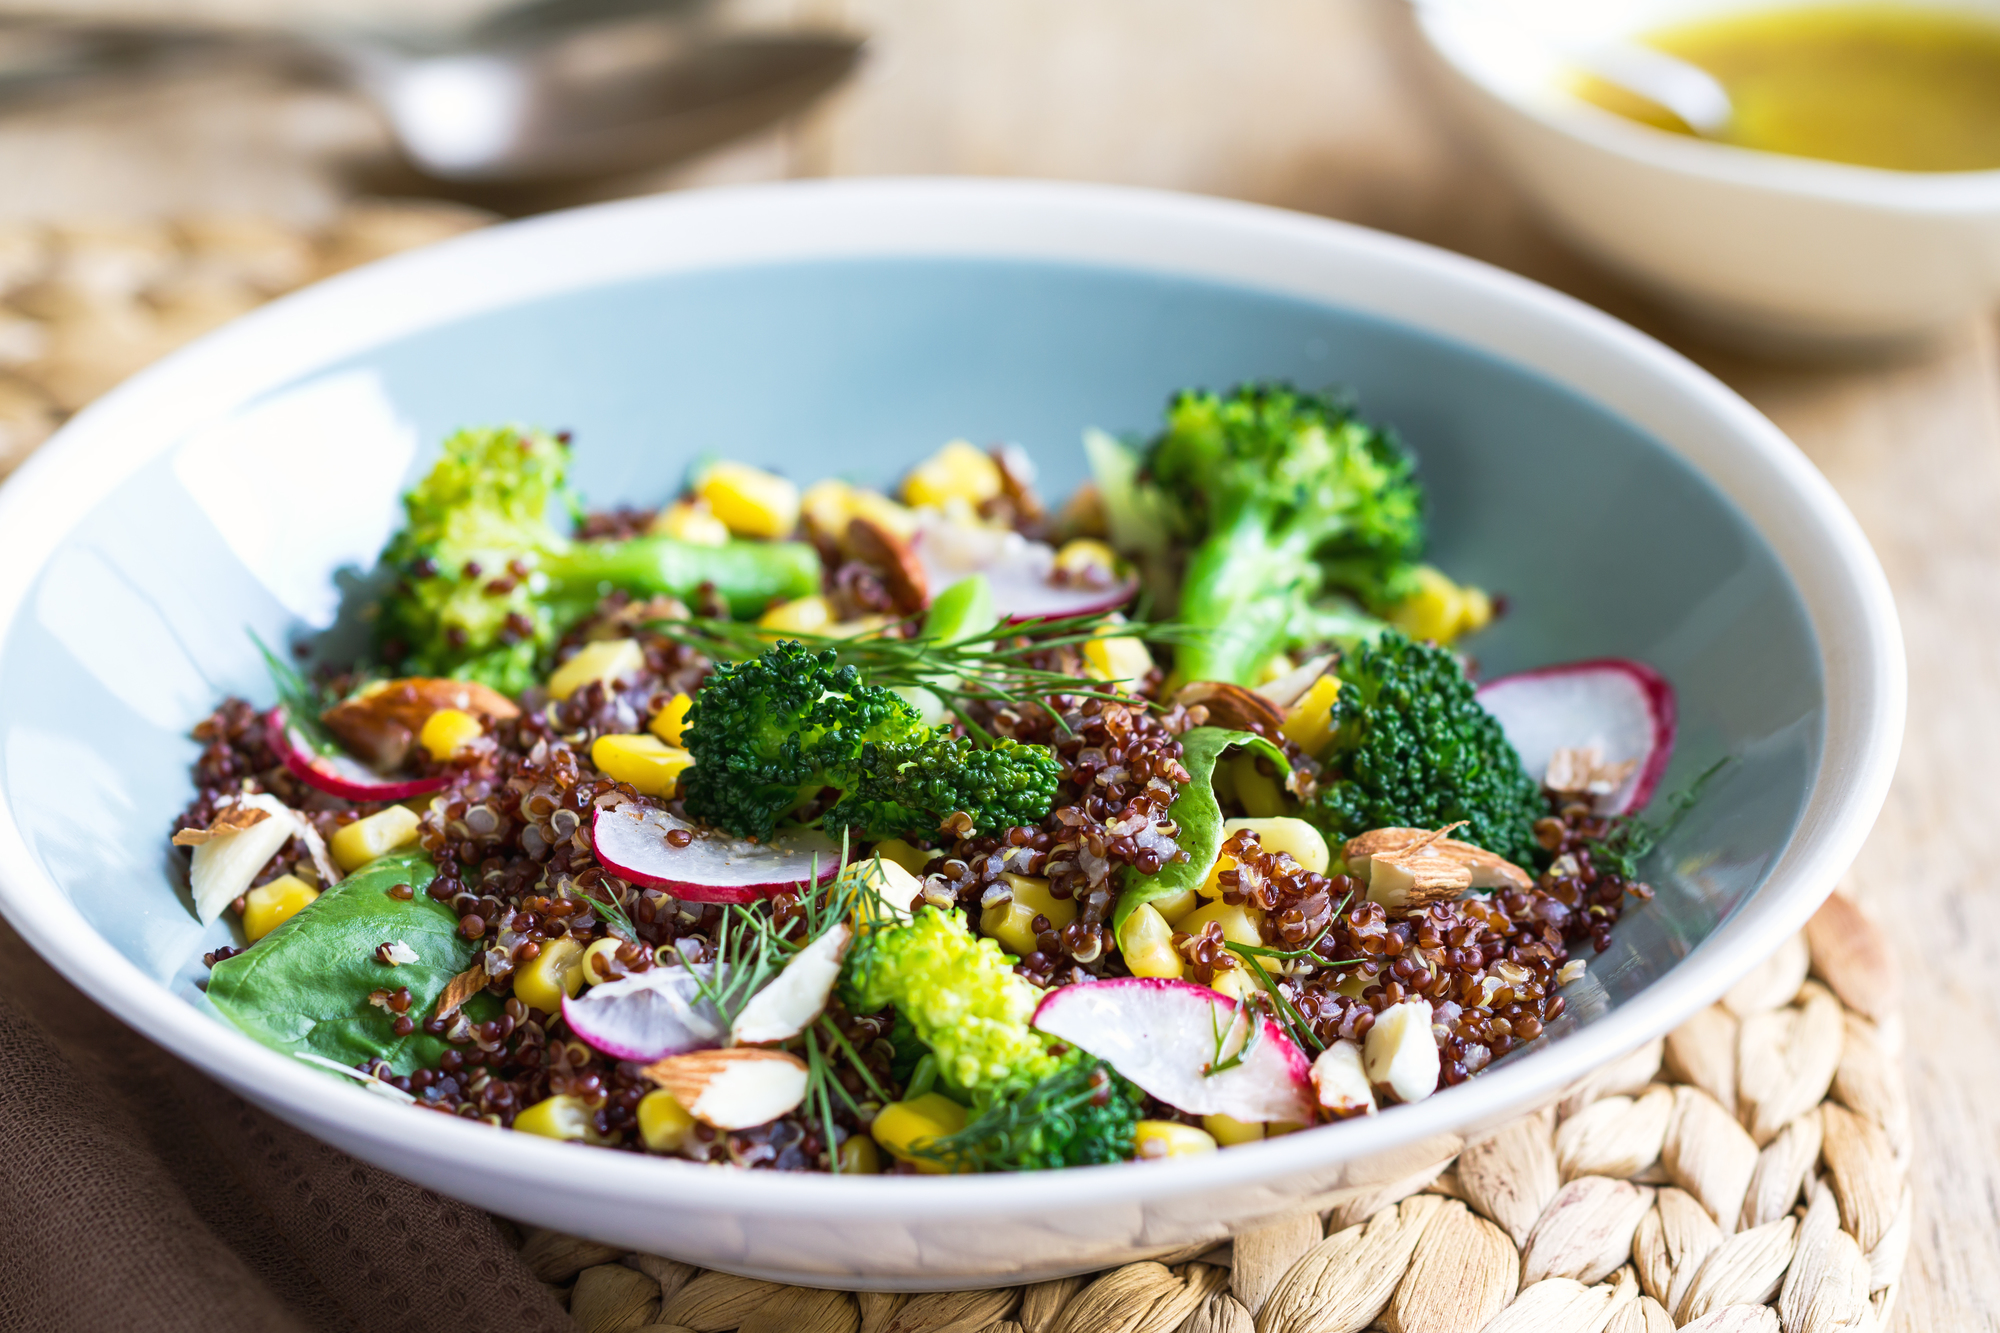 Red Quinoa with corn and broccoli salad by vinaigrette